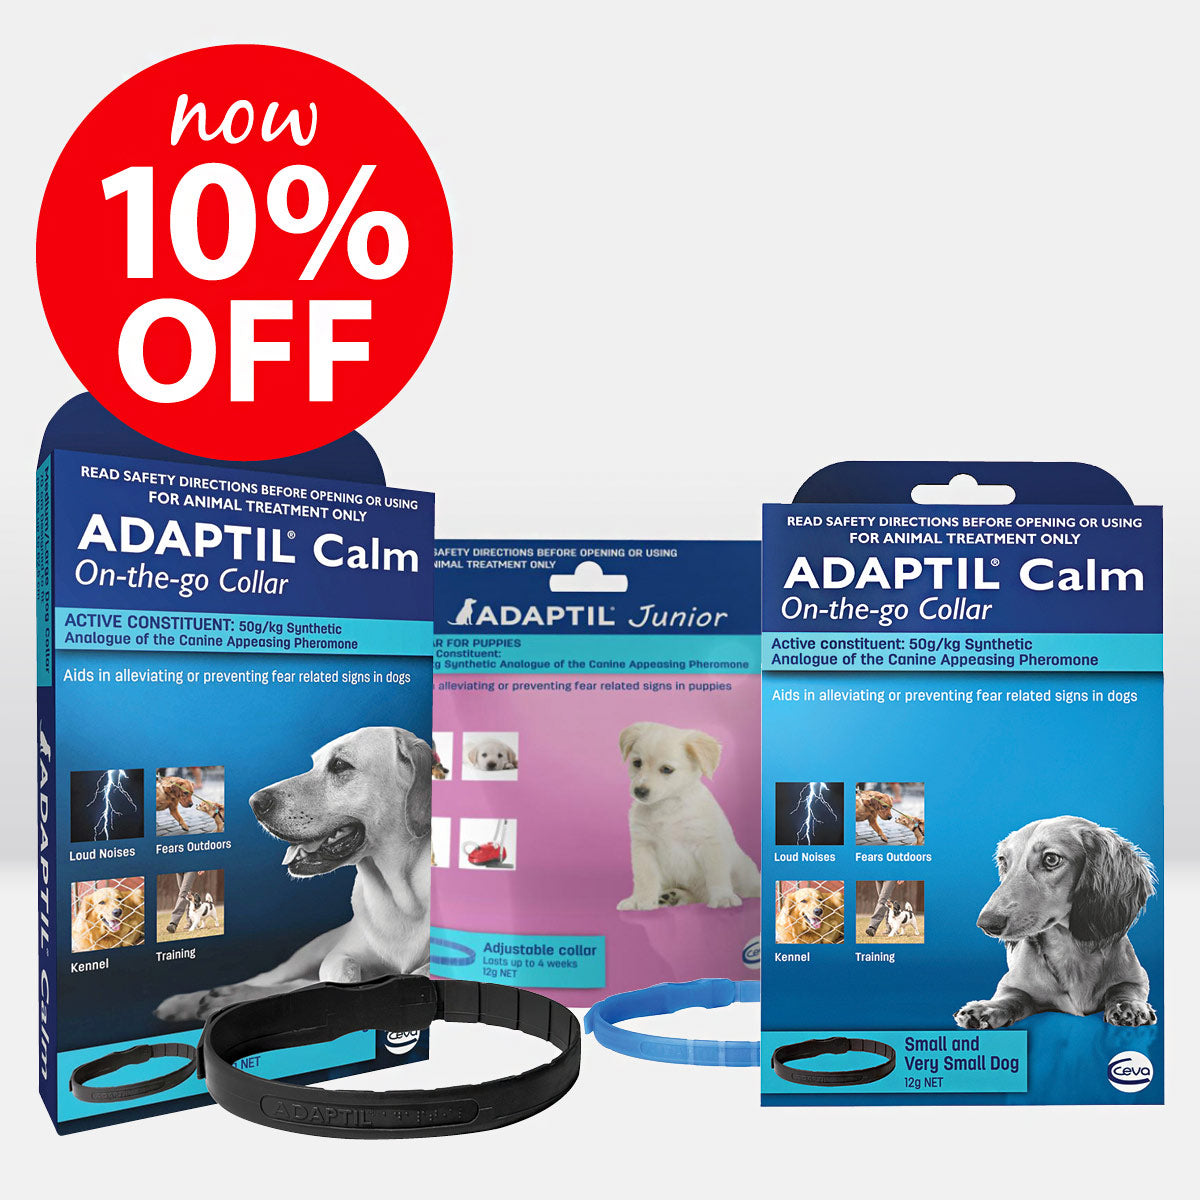 Adaptil Calm Collar ON SALE